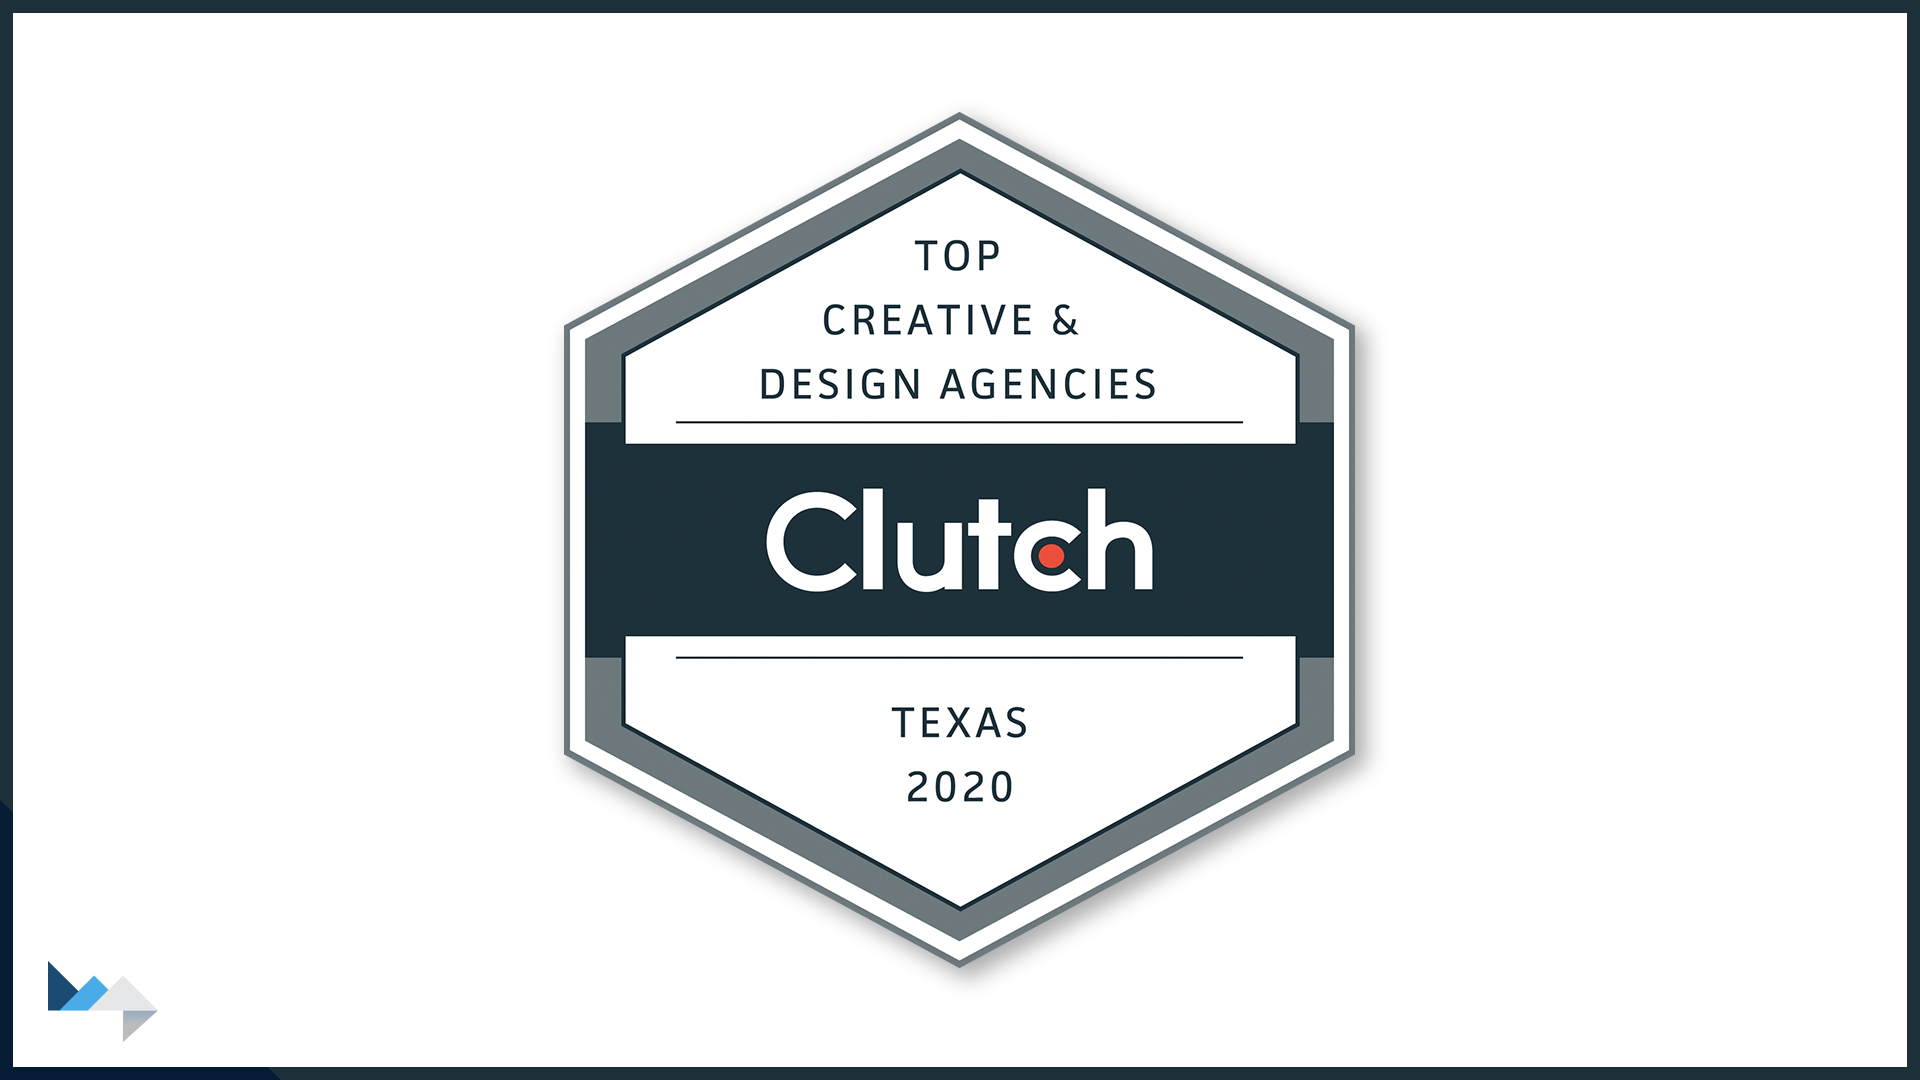 Clutch Top B2B Company Award